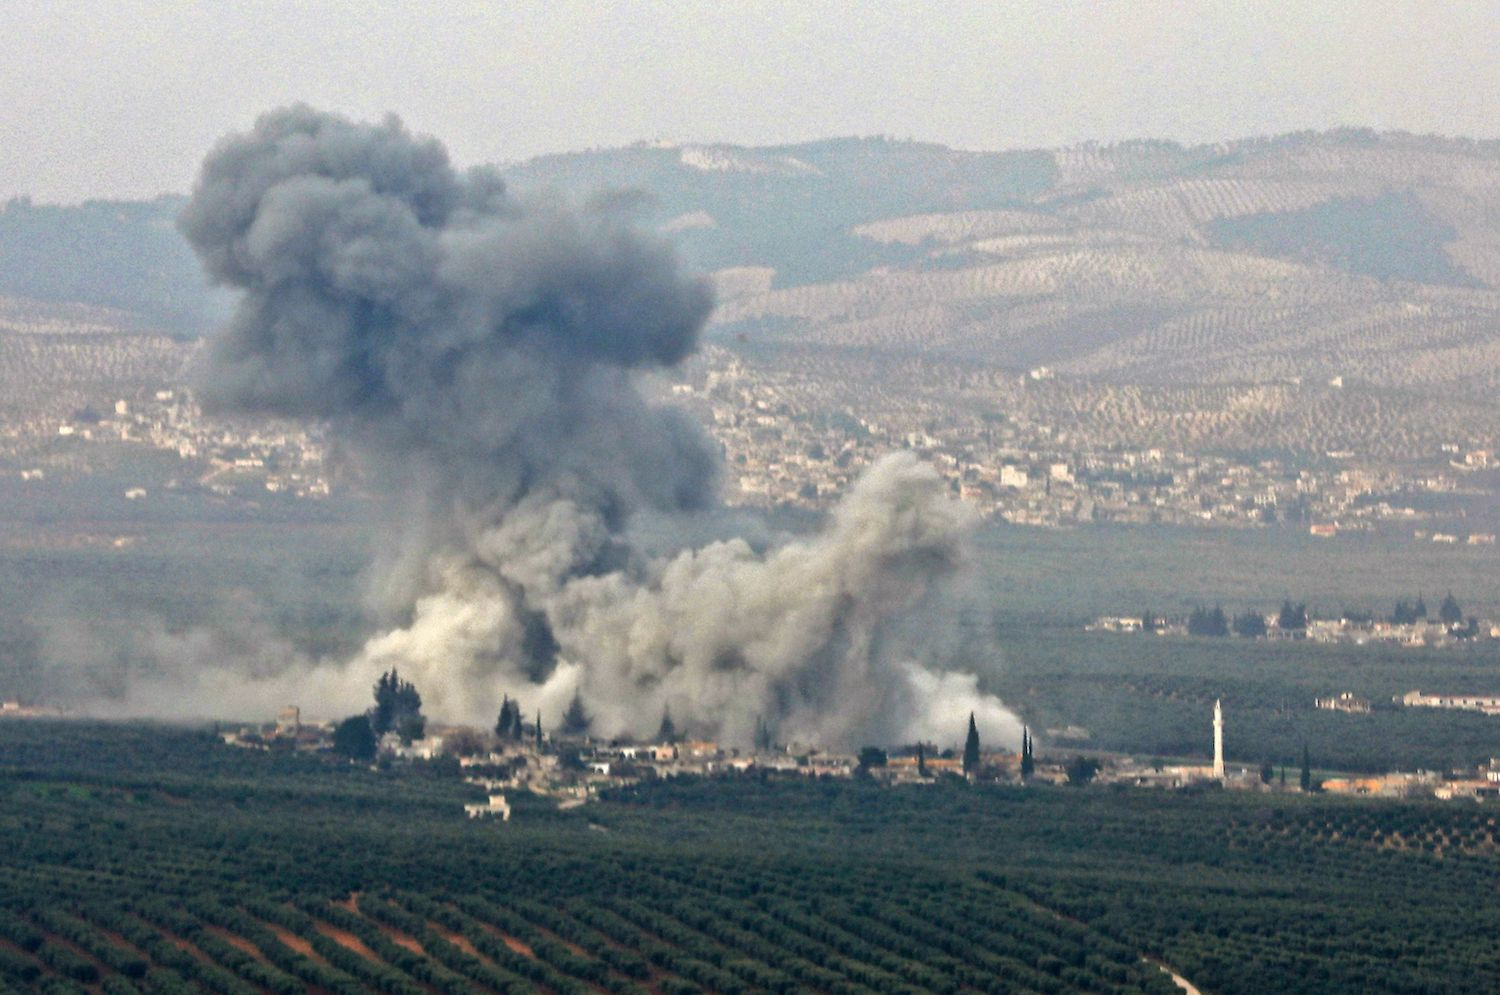 Smoke billows in the Deir Ballut region in northern Syria, where Turkish forces and allied Syrian rebel groups are conducting an offensive on February 9, 2018 as seen from the northern border Syrian town of Atmah.  / AFP PHOTO / OMAR HAJ KADOUR        (Photo credit should read OMAR HAJ KADOUR/AFP/Getty Images)